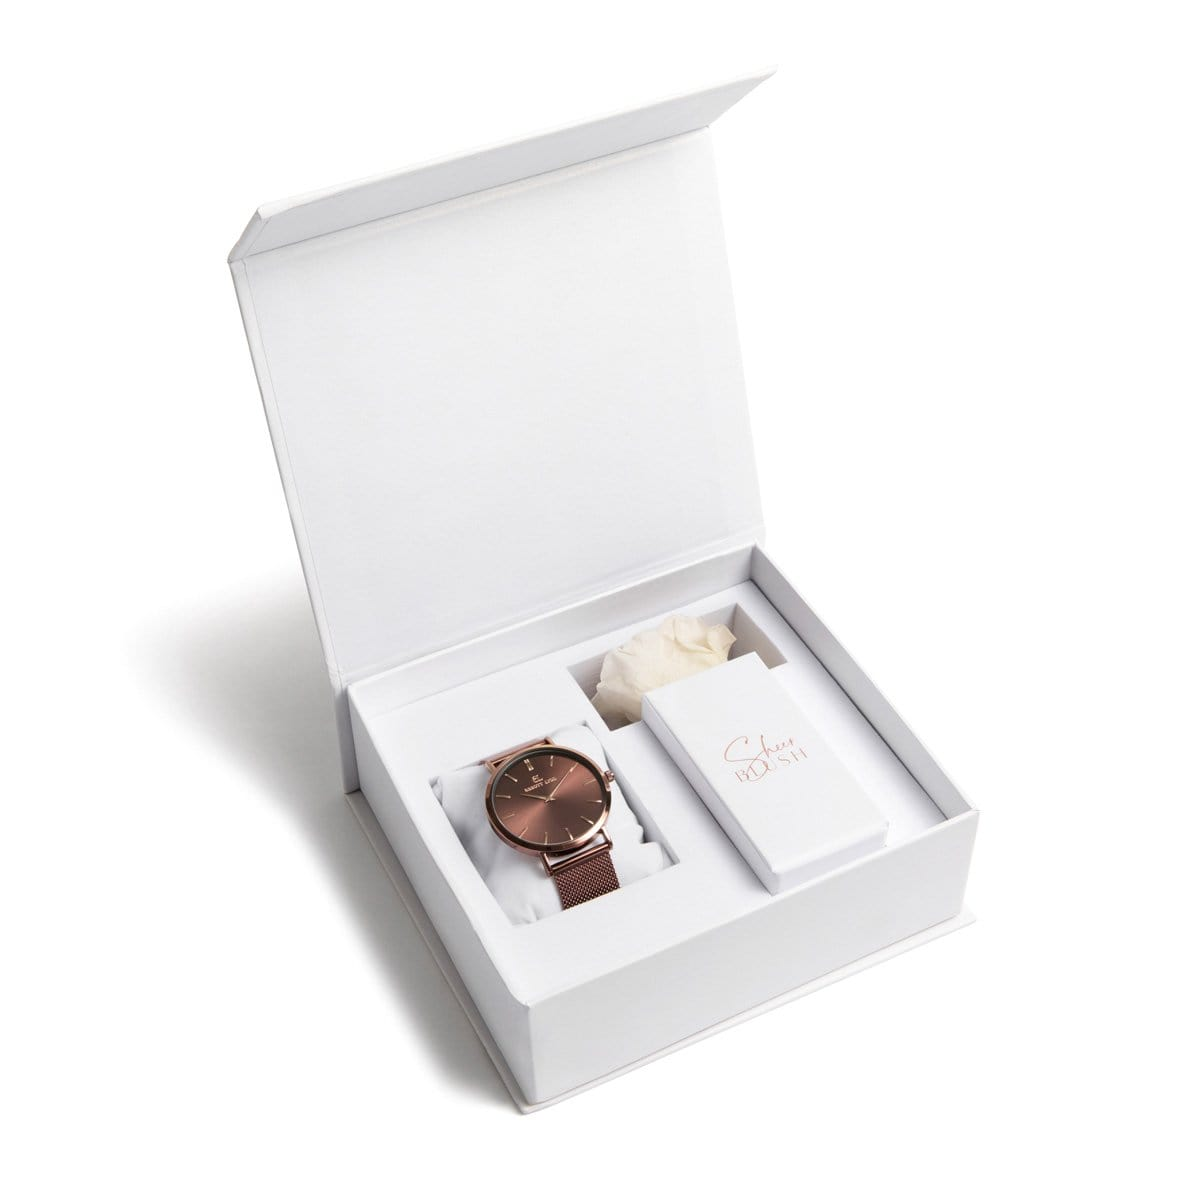 The Mocha Infinity Rose Geschenkset (White)